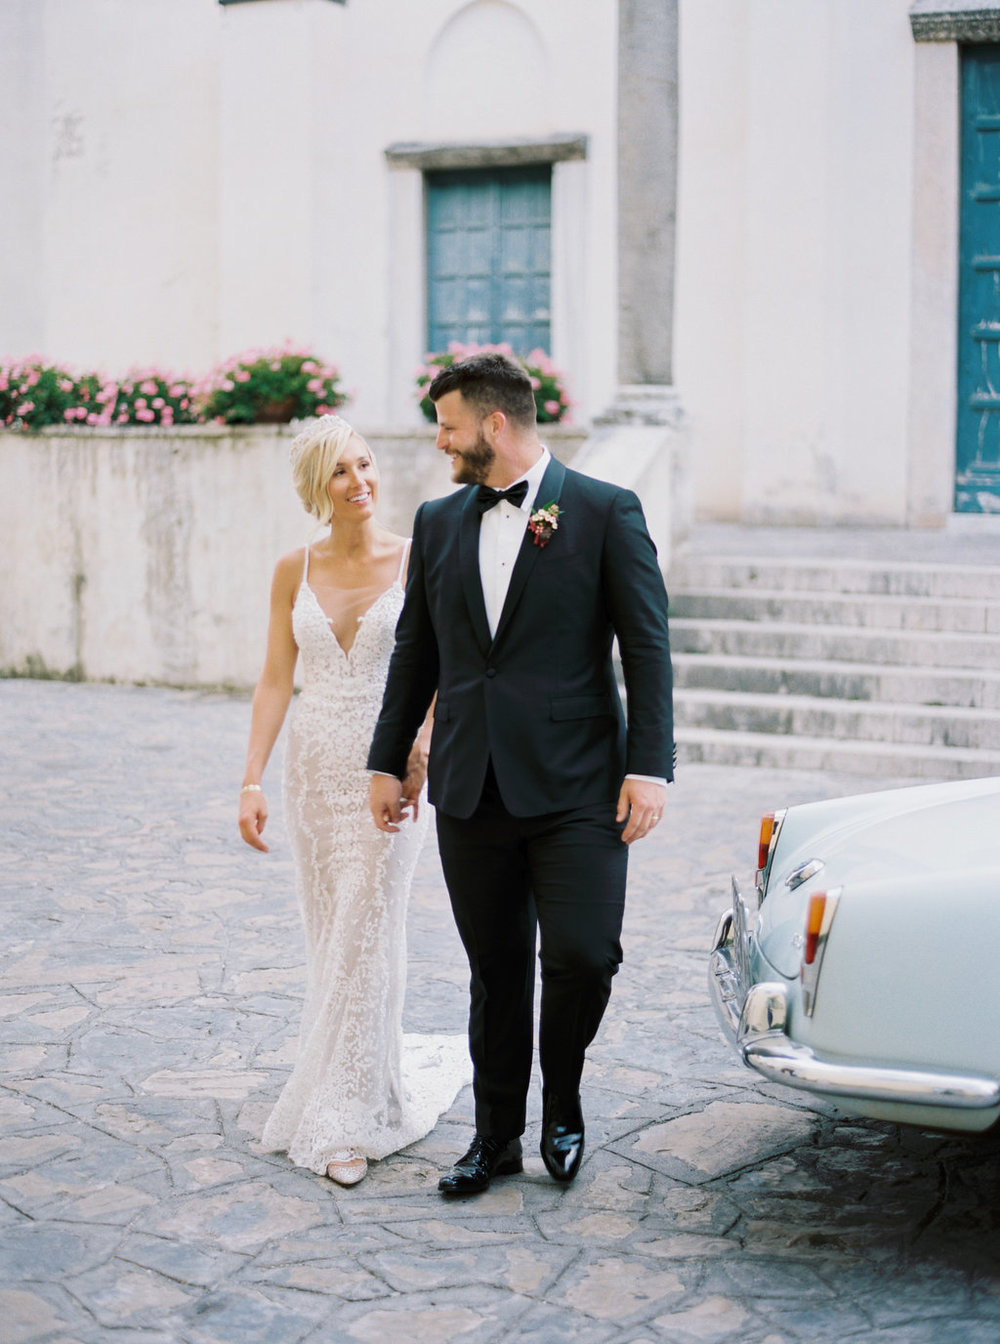 Allie & Joey - RAVELLO, AMALFI, ITALY